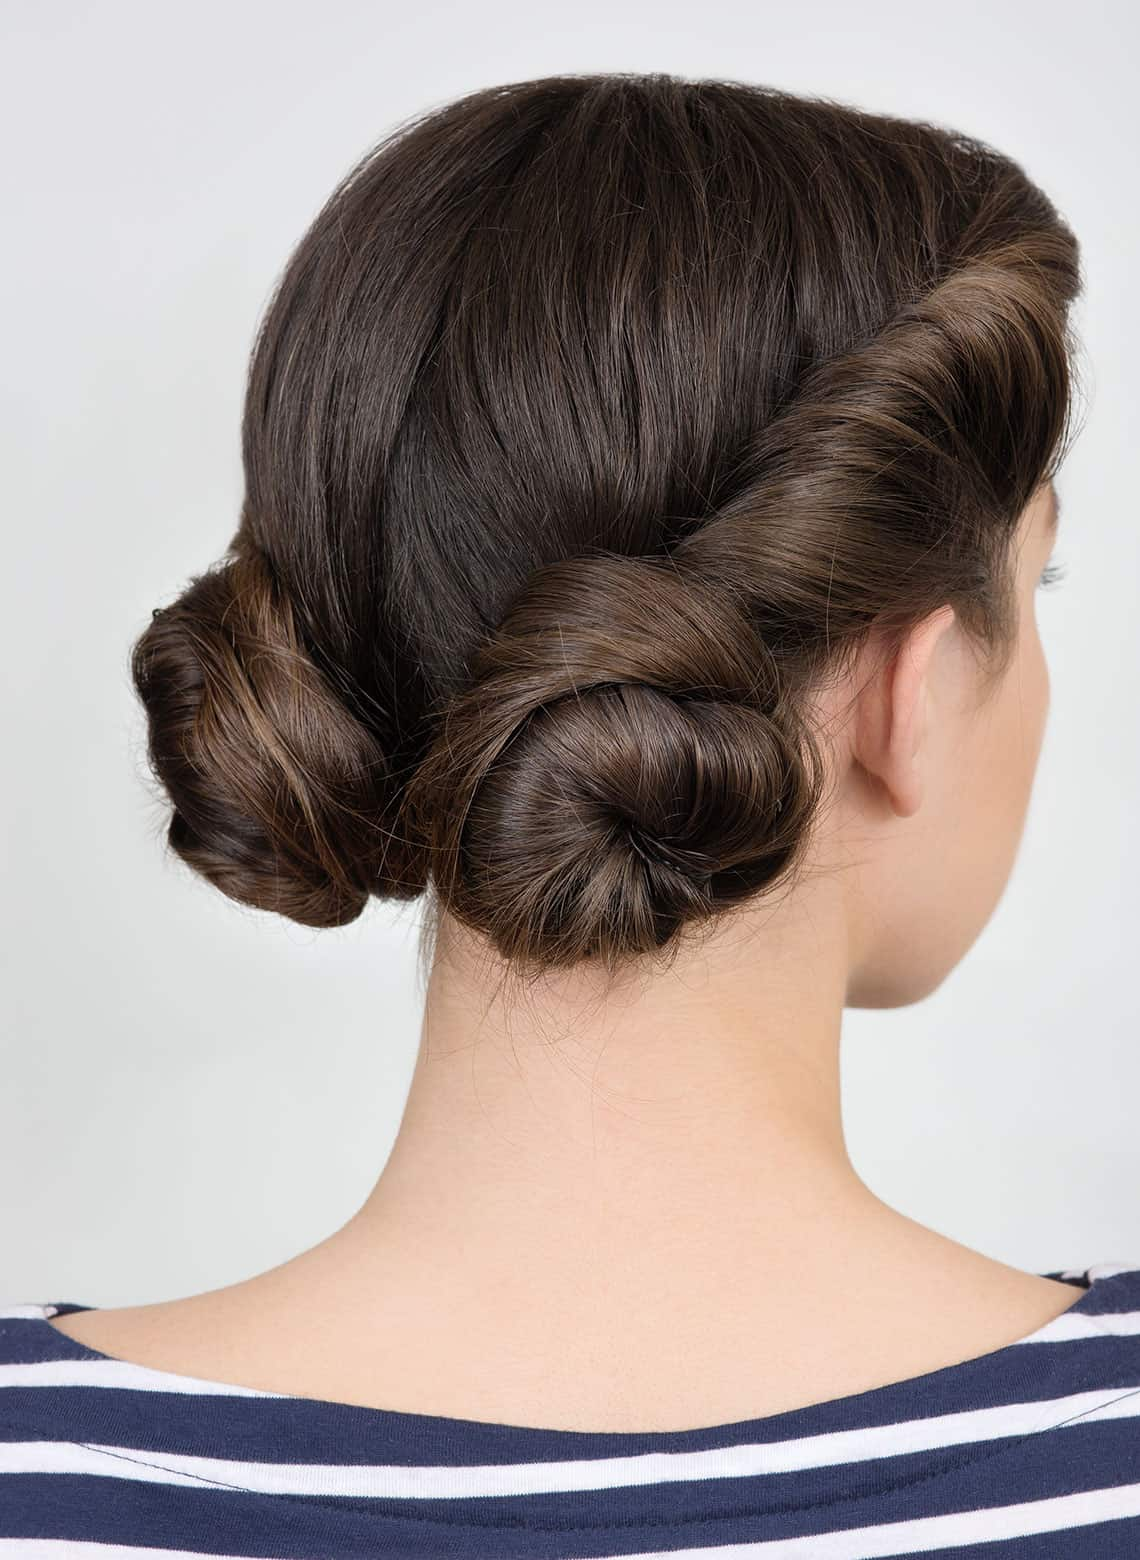 woman with low double buns